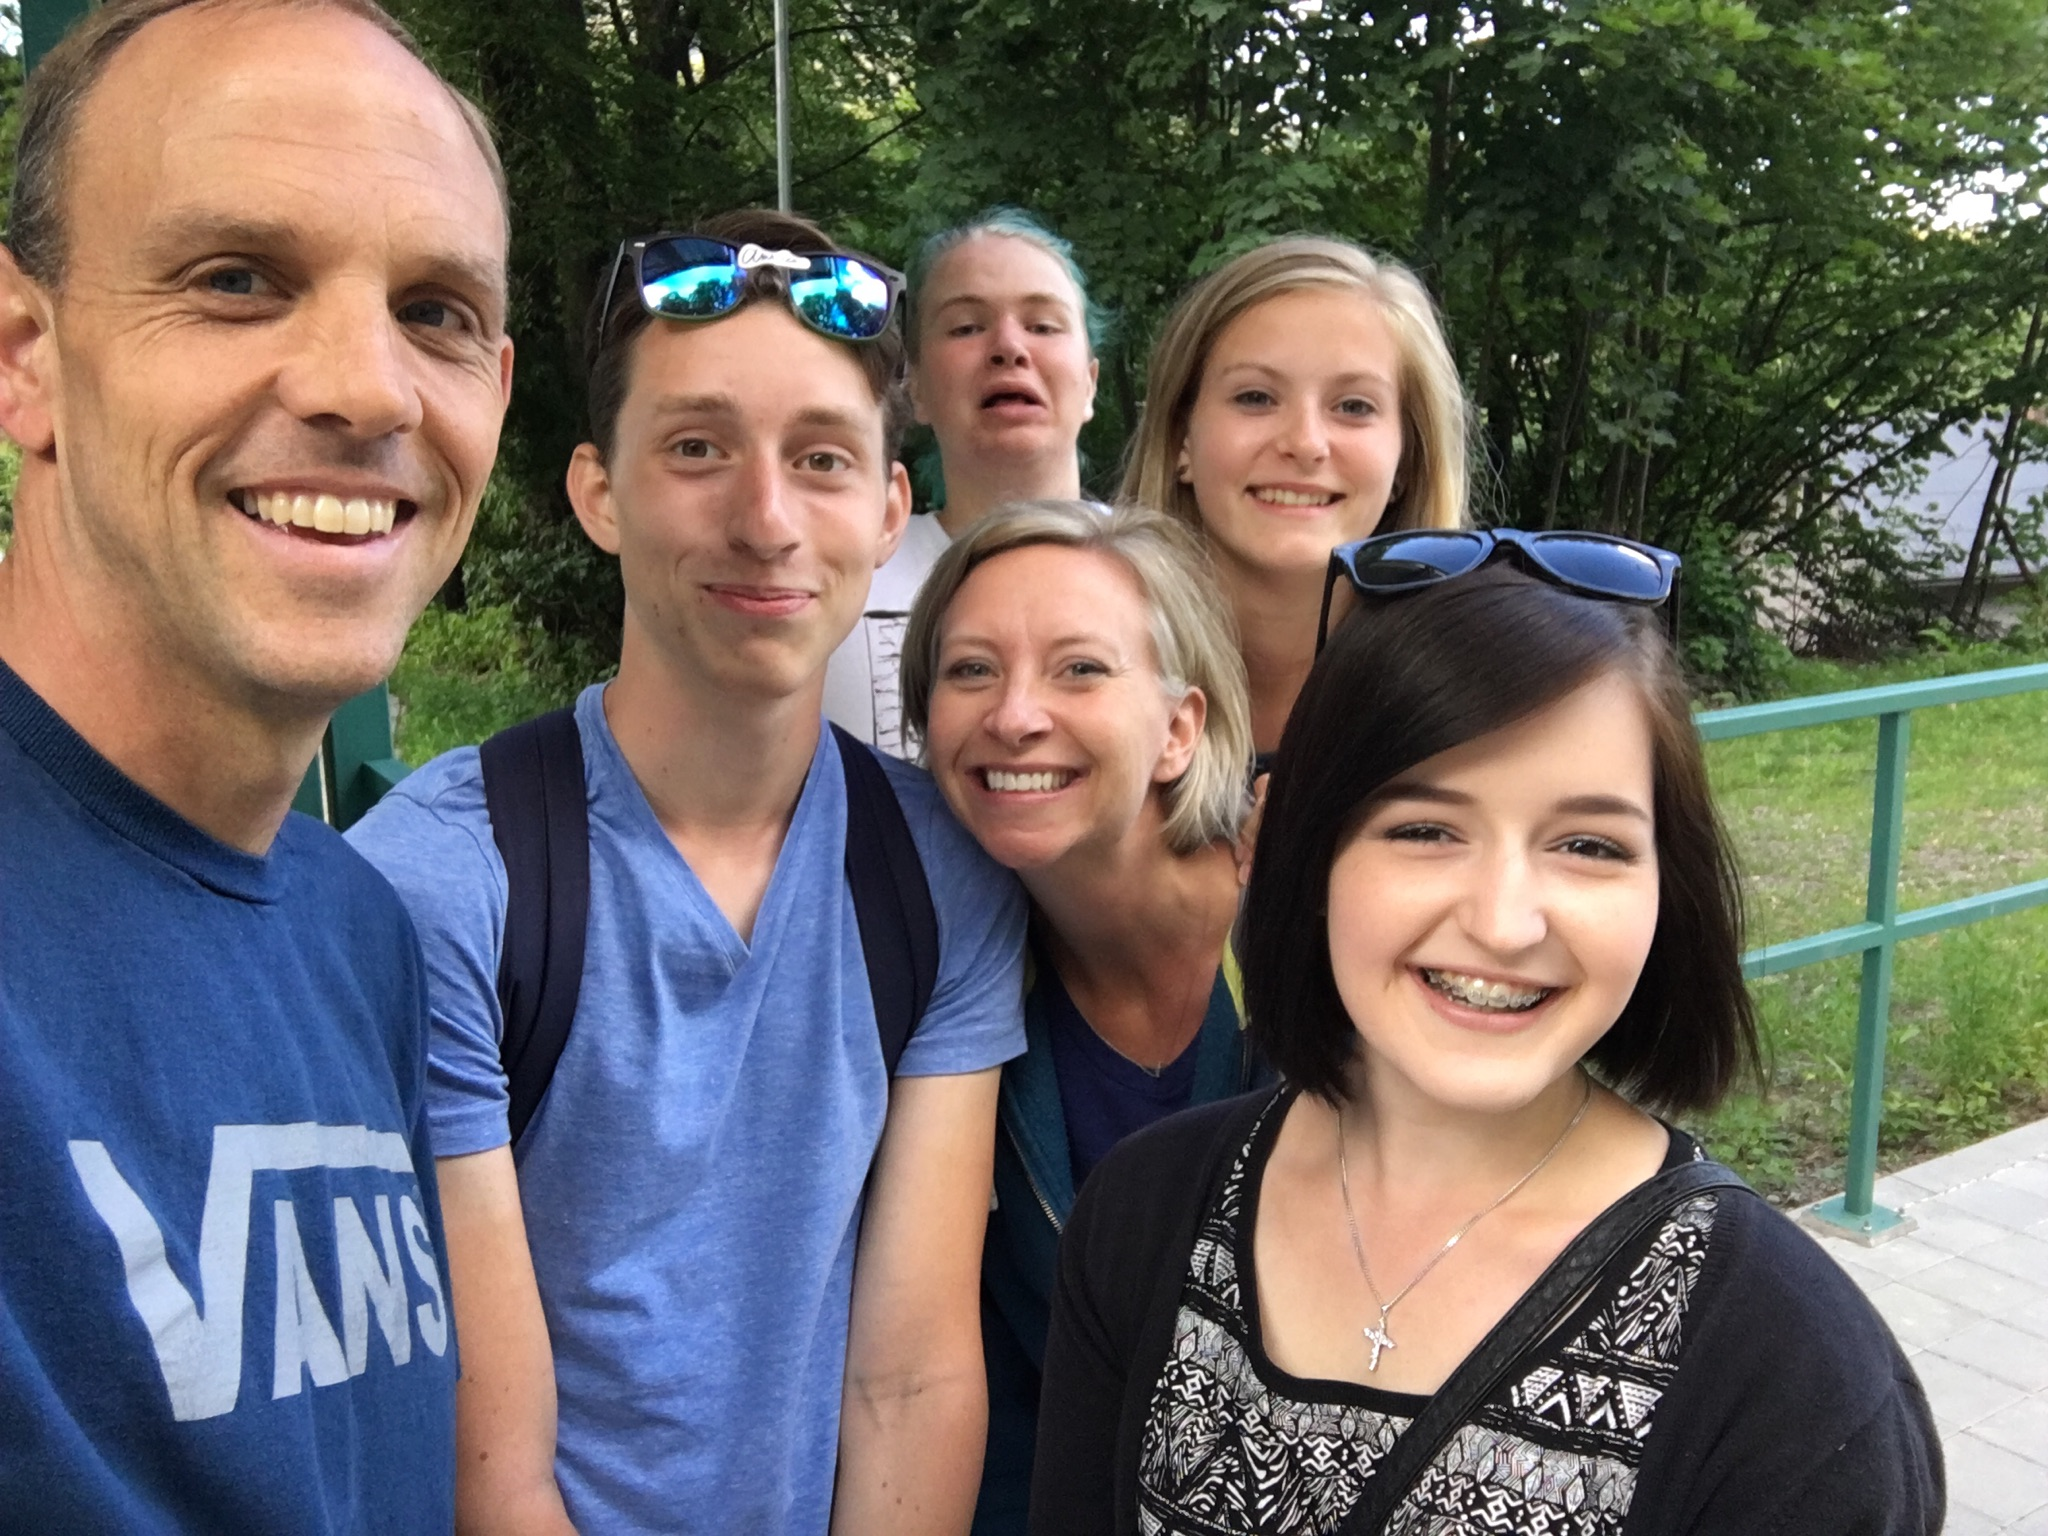 A few of the students had to leave a few days early so we walked them to the train station.